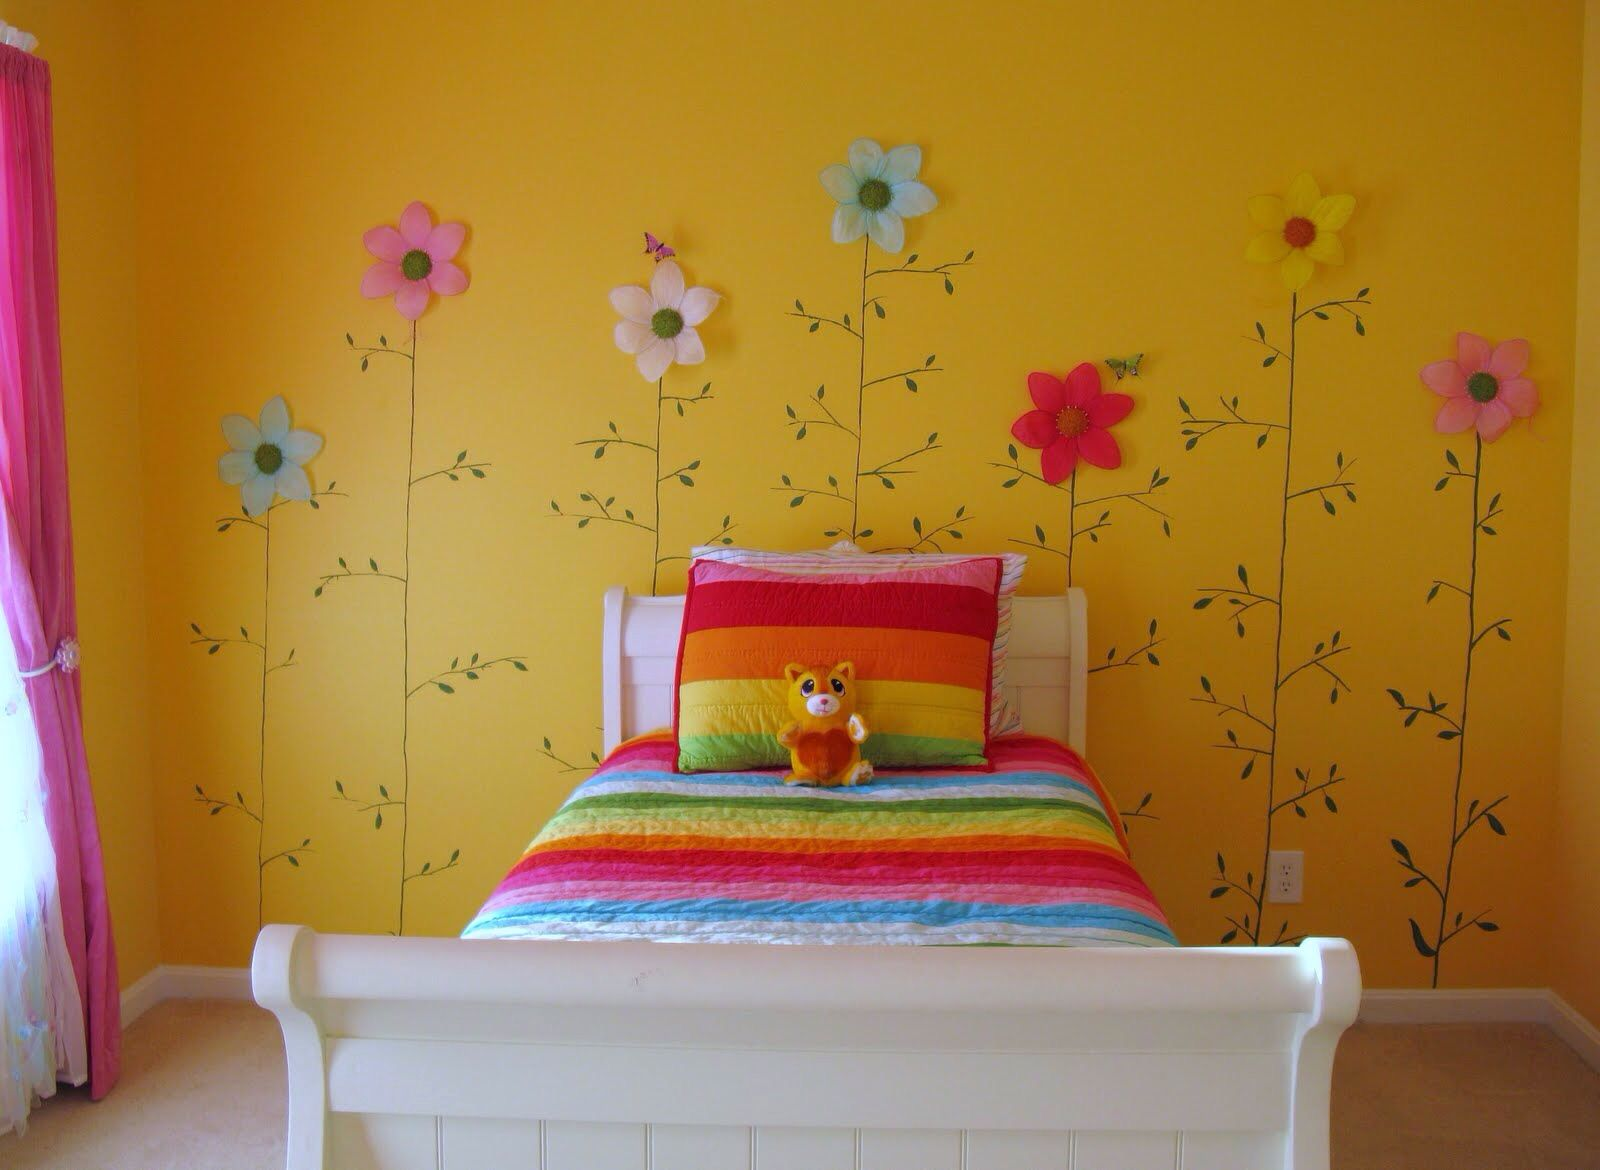 Lovely Girls Bedroom For Modern Your Room With Yellow Wall Paint And Rainbow  Bed Also Flower Walpaper In Wall Yellow Wall Nice Girls Kid Bedroom With  Pink ...